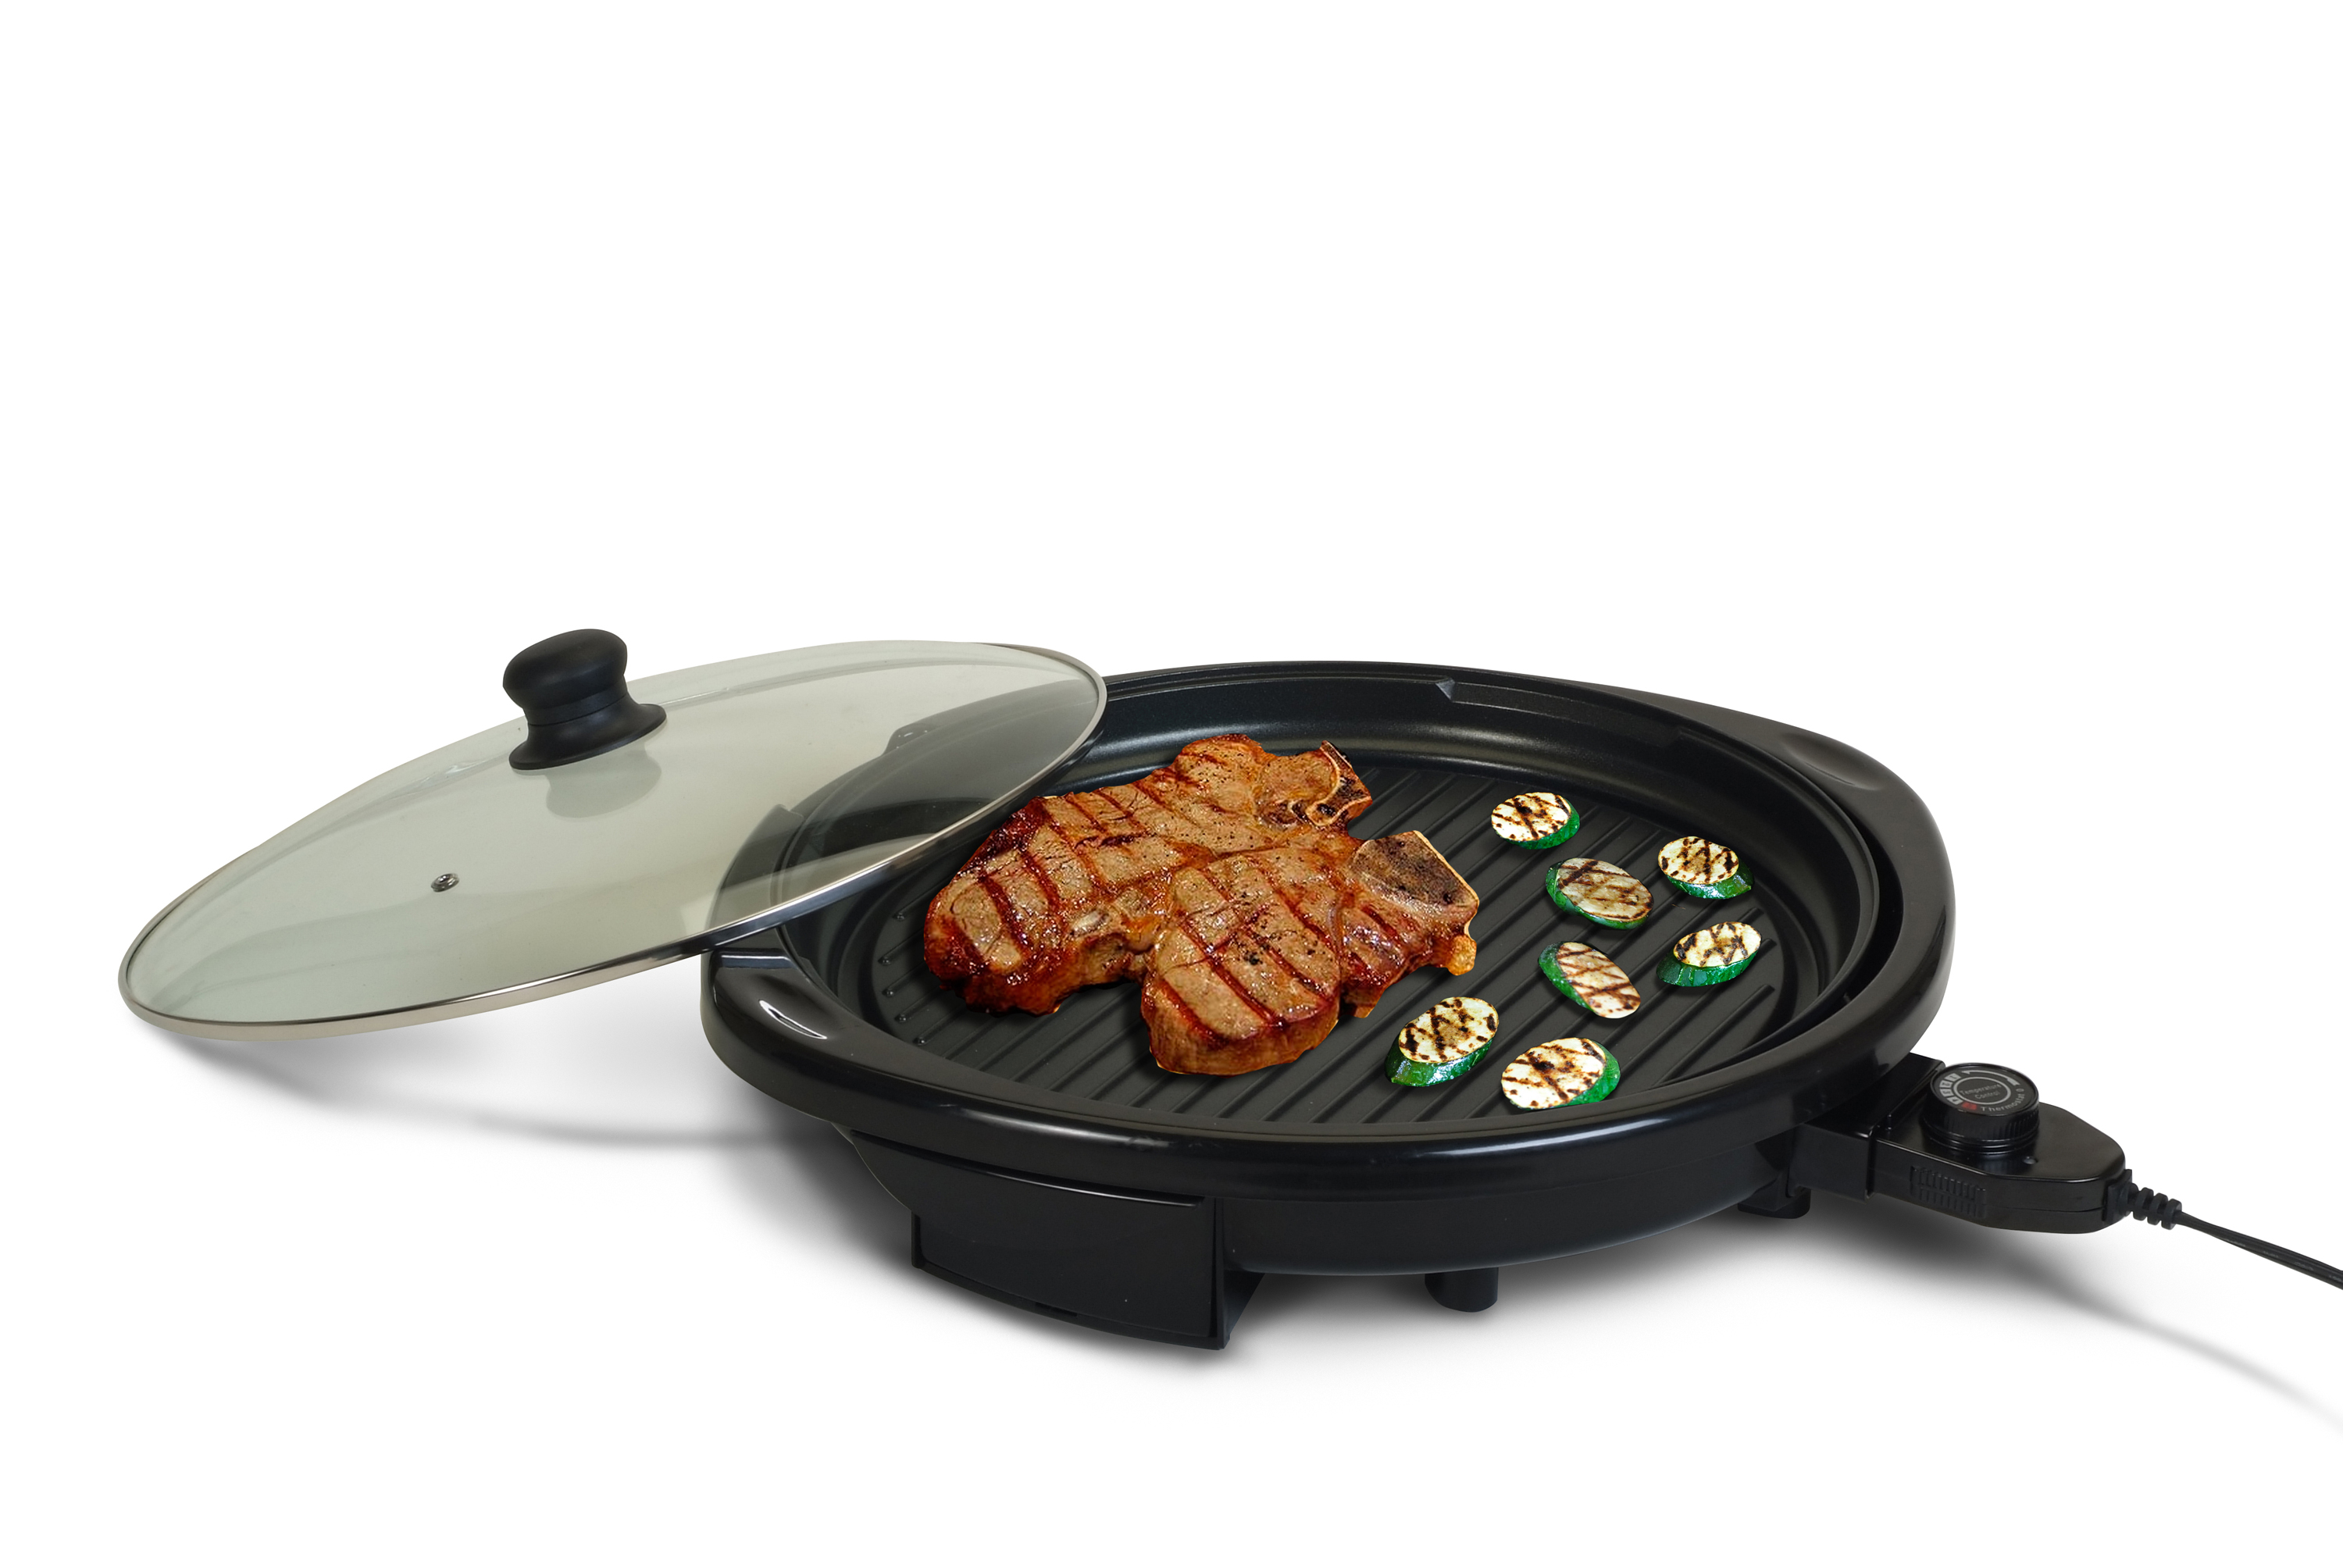 ELITE GOURMET EMG-980B 14 INCH NONSTICK ELECTRIC INDOOR GRILL